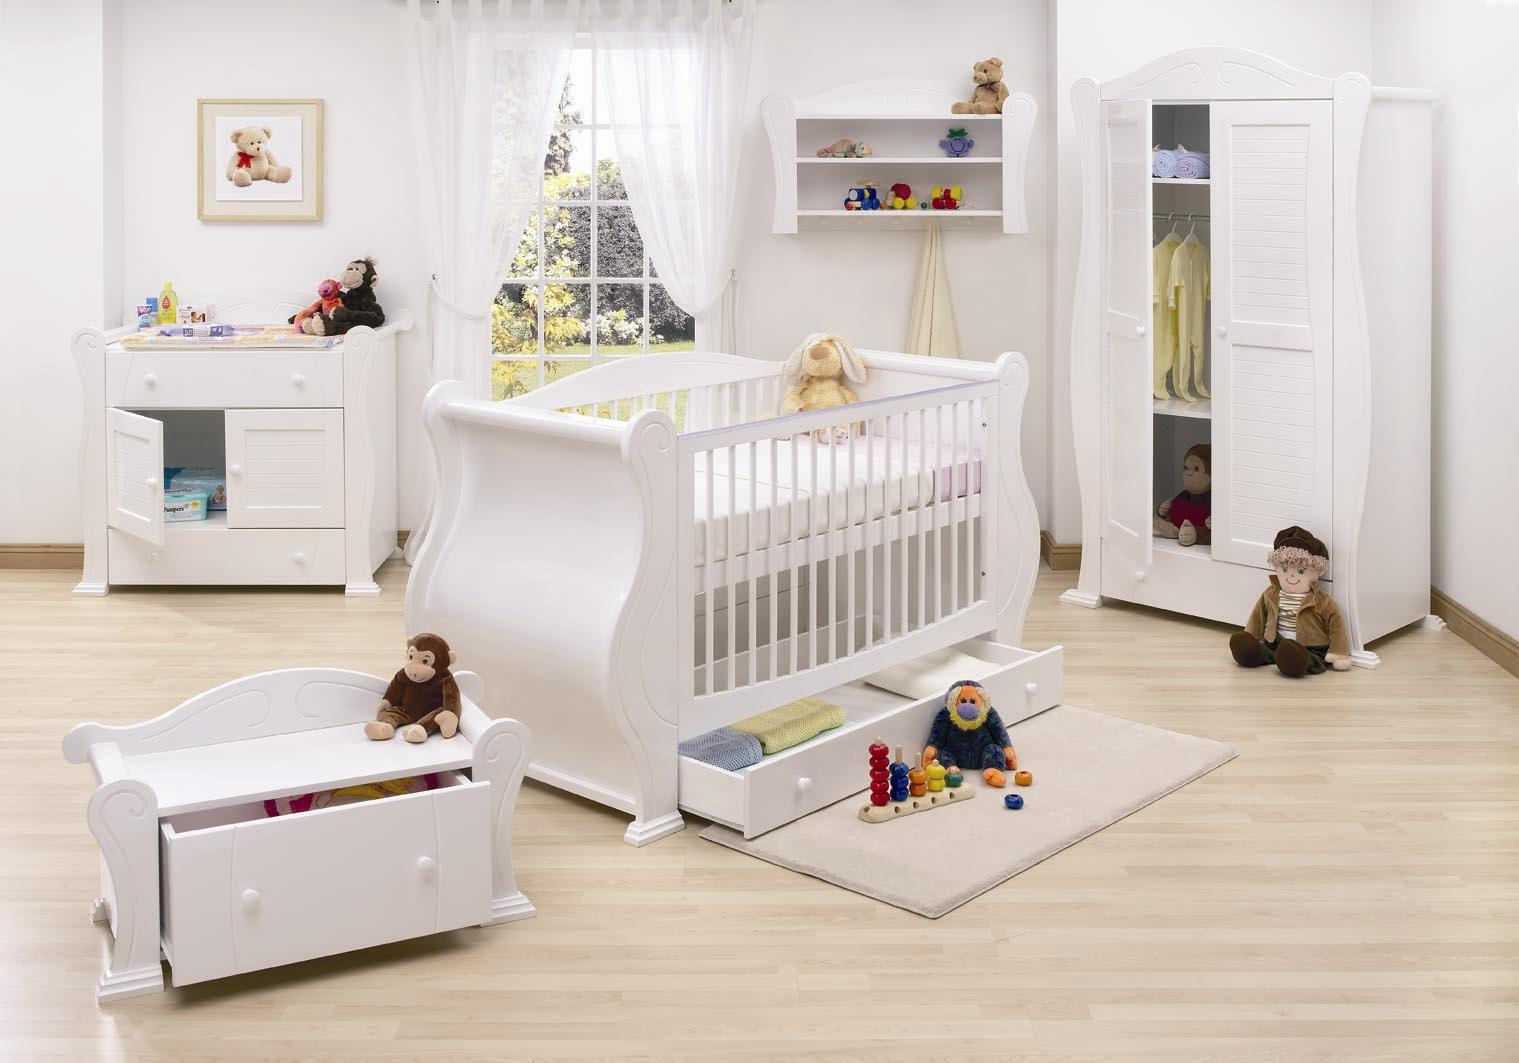 Stunning White Theme Baby bedroom Furniture Concept: Bright Stunning White Theme Baby Bedroom Furniture Design Ideas Nursery Interior Ideas Painted White Cute Baby Furniture Parquet Floor